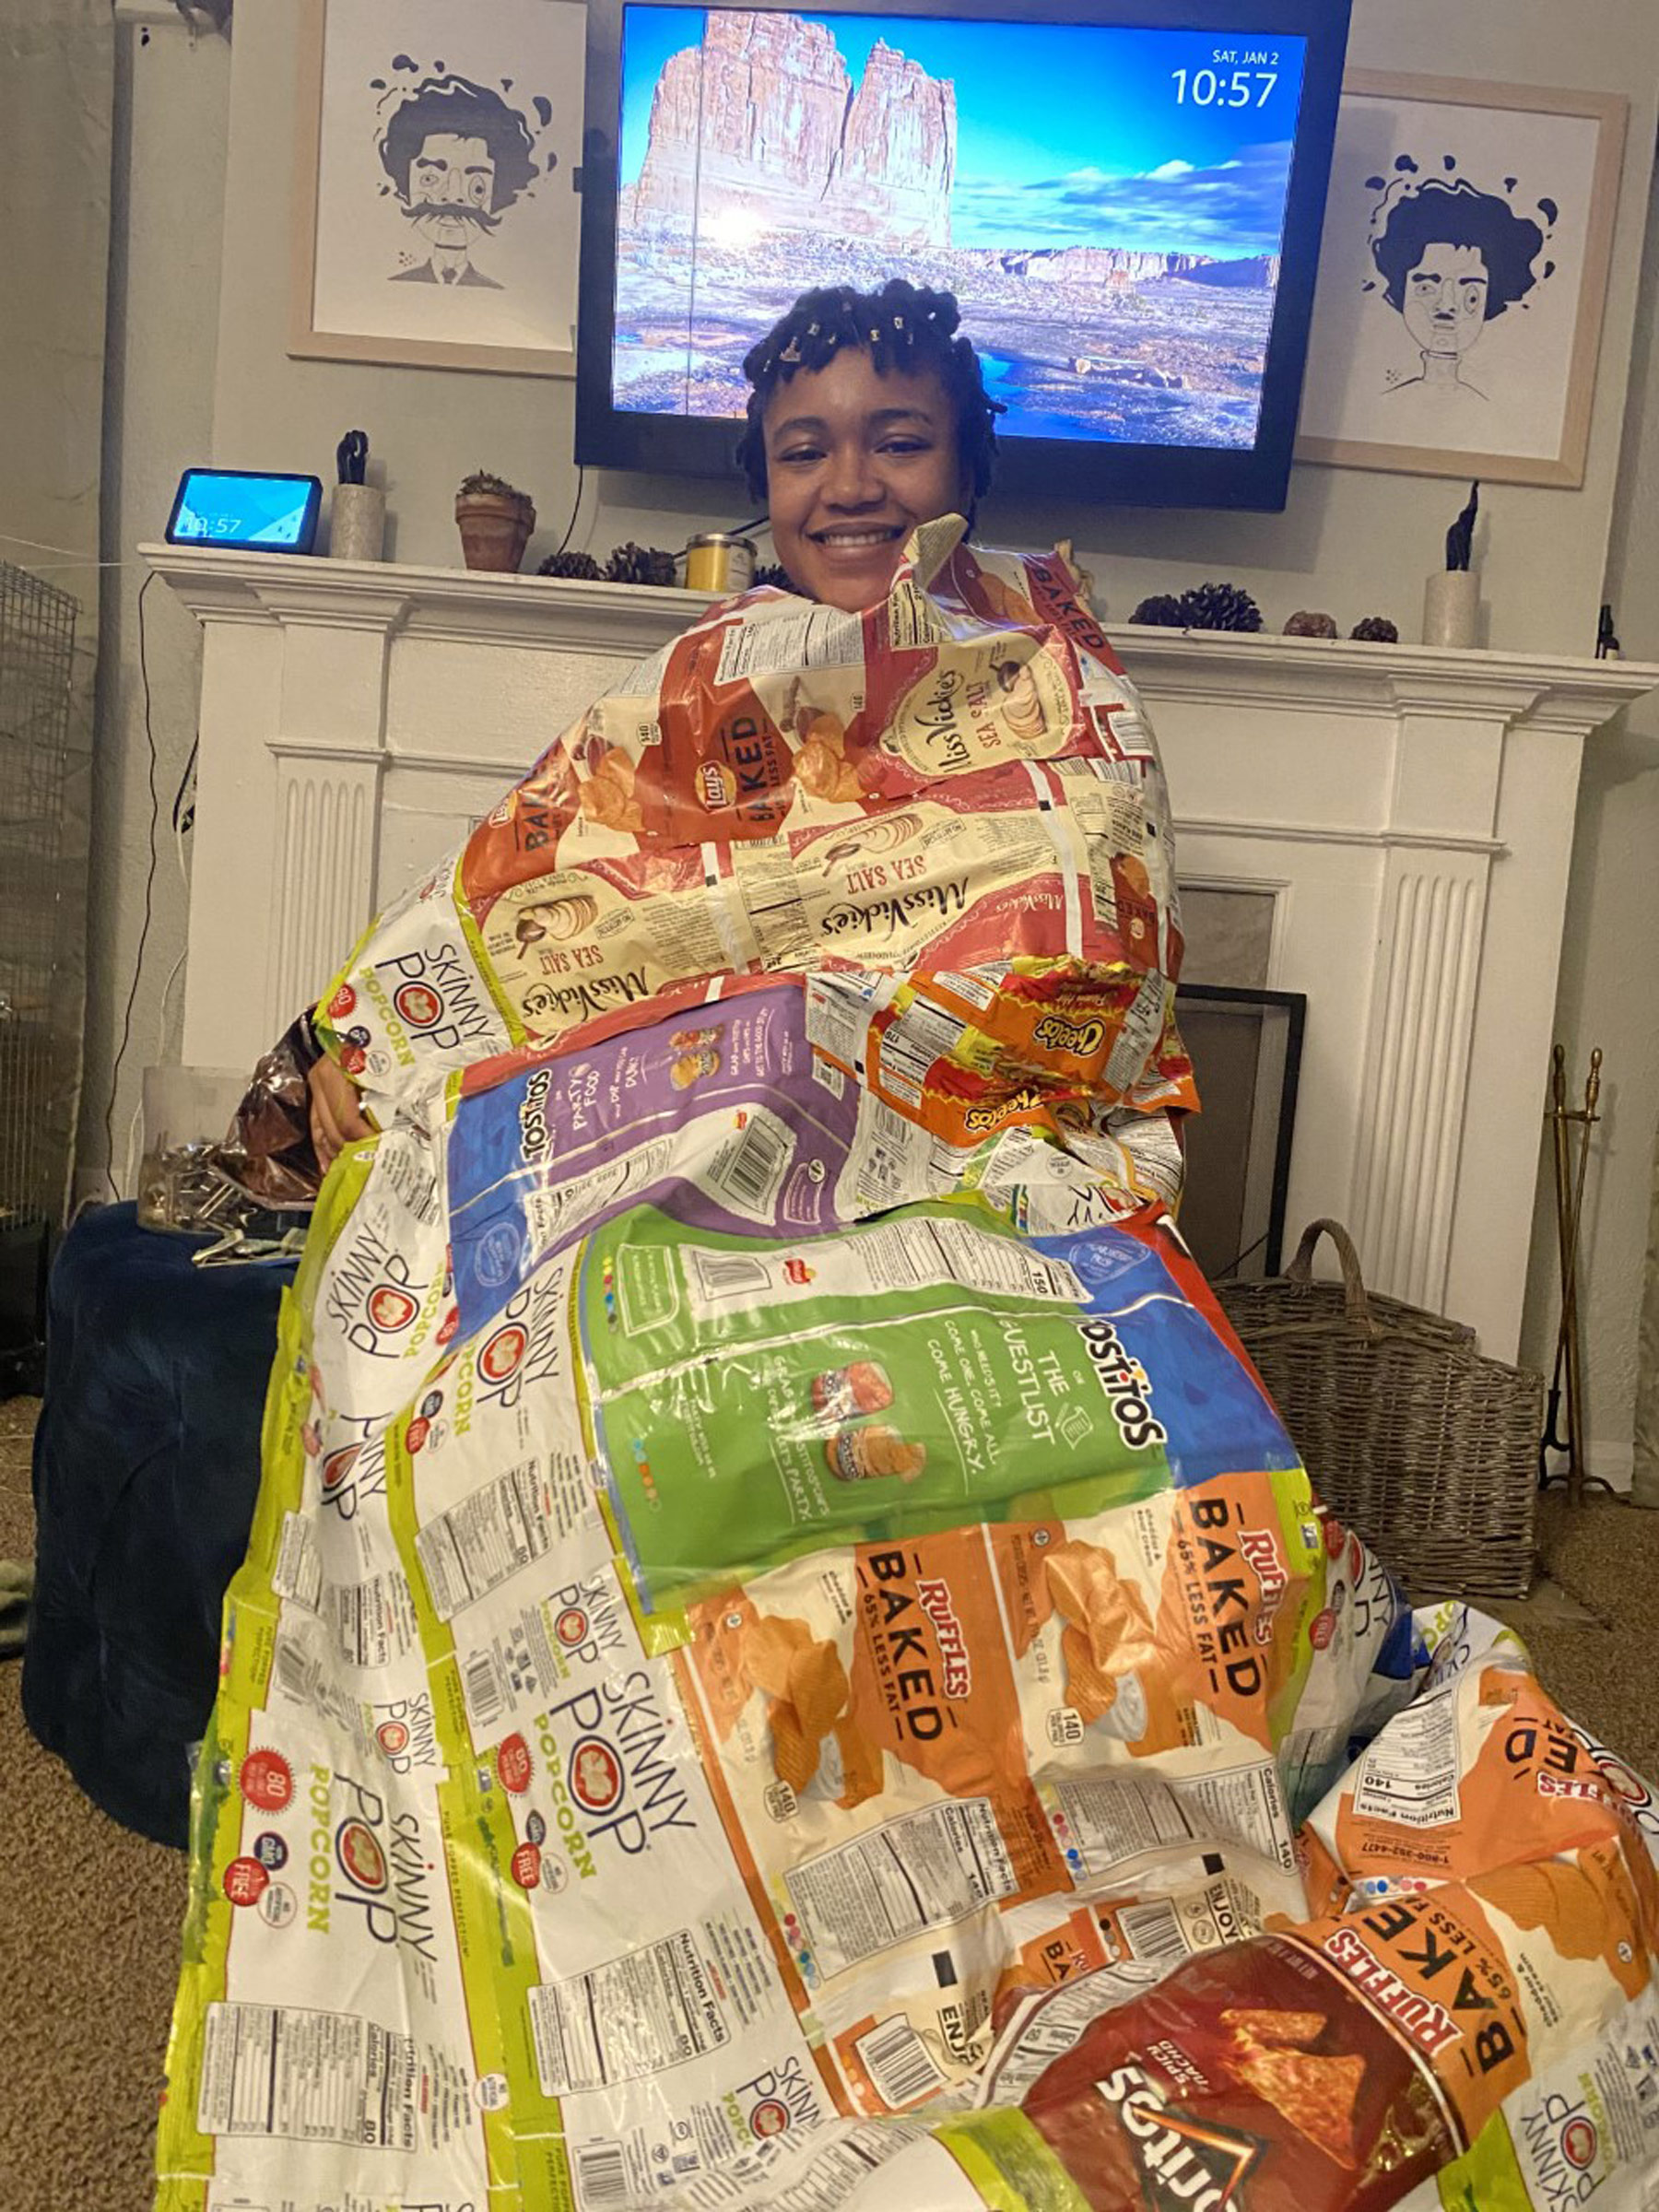 Detroit activist turns old potato chip bags into sleeping bags for the homeless